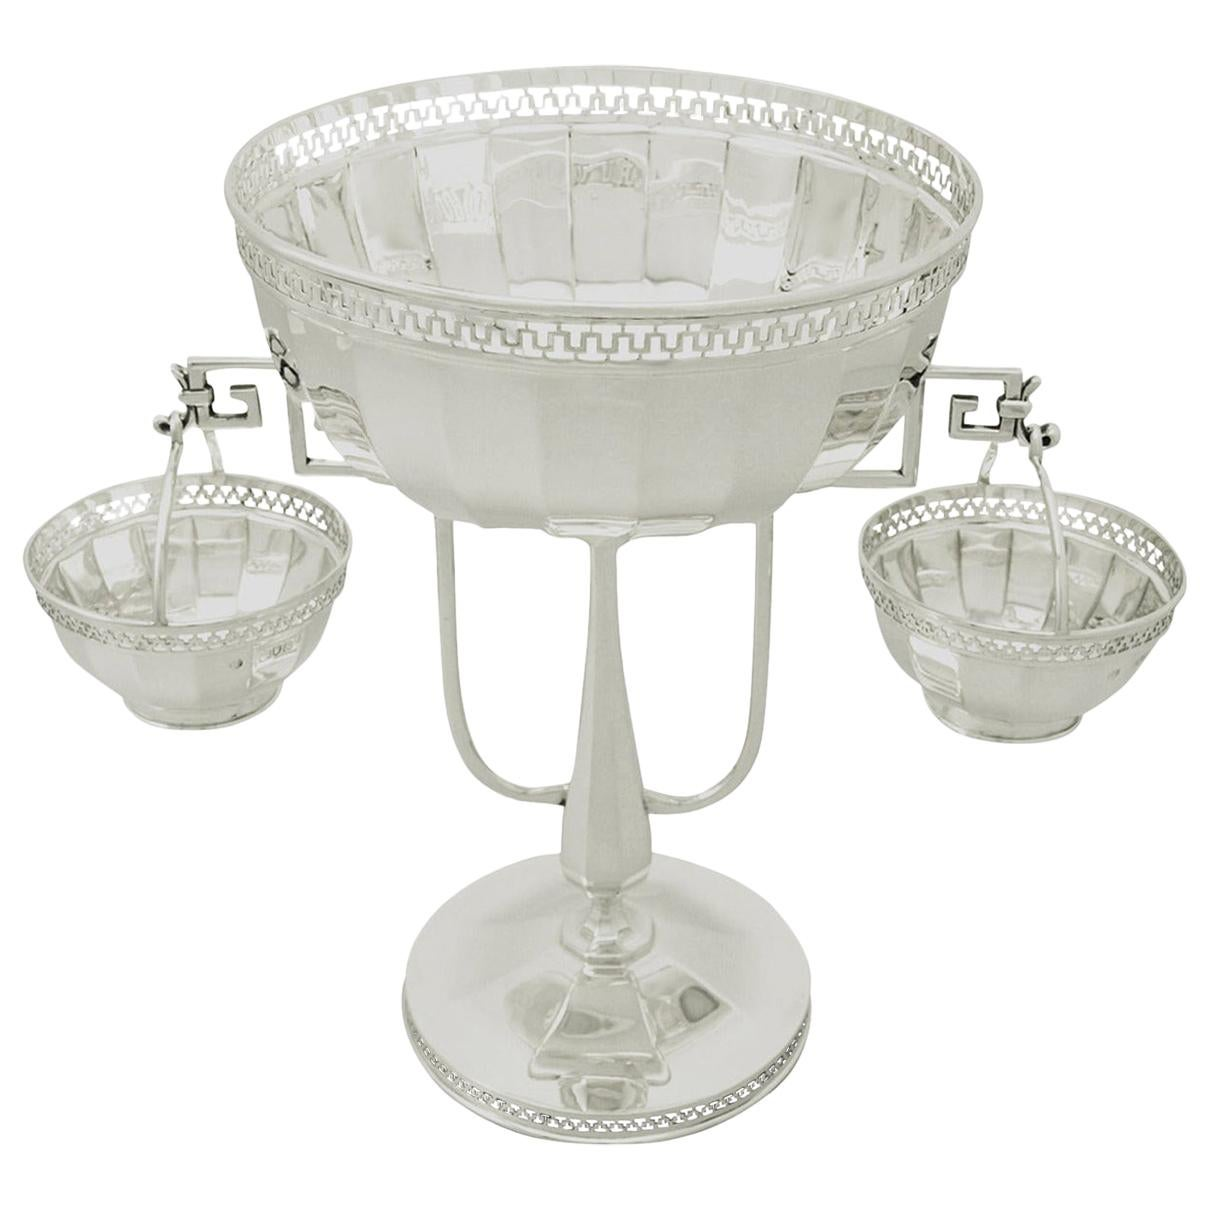 20th Century Antique George V Sterling Silver Centerpiece